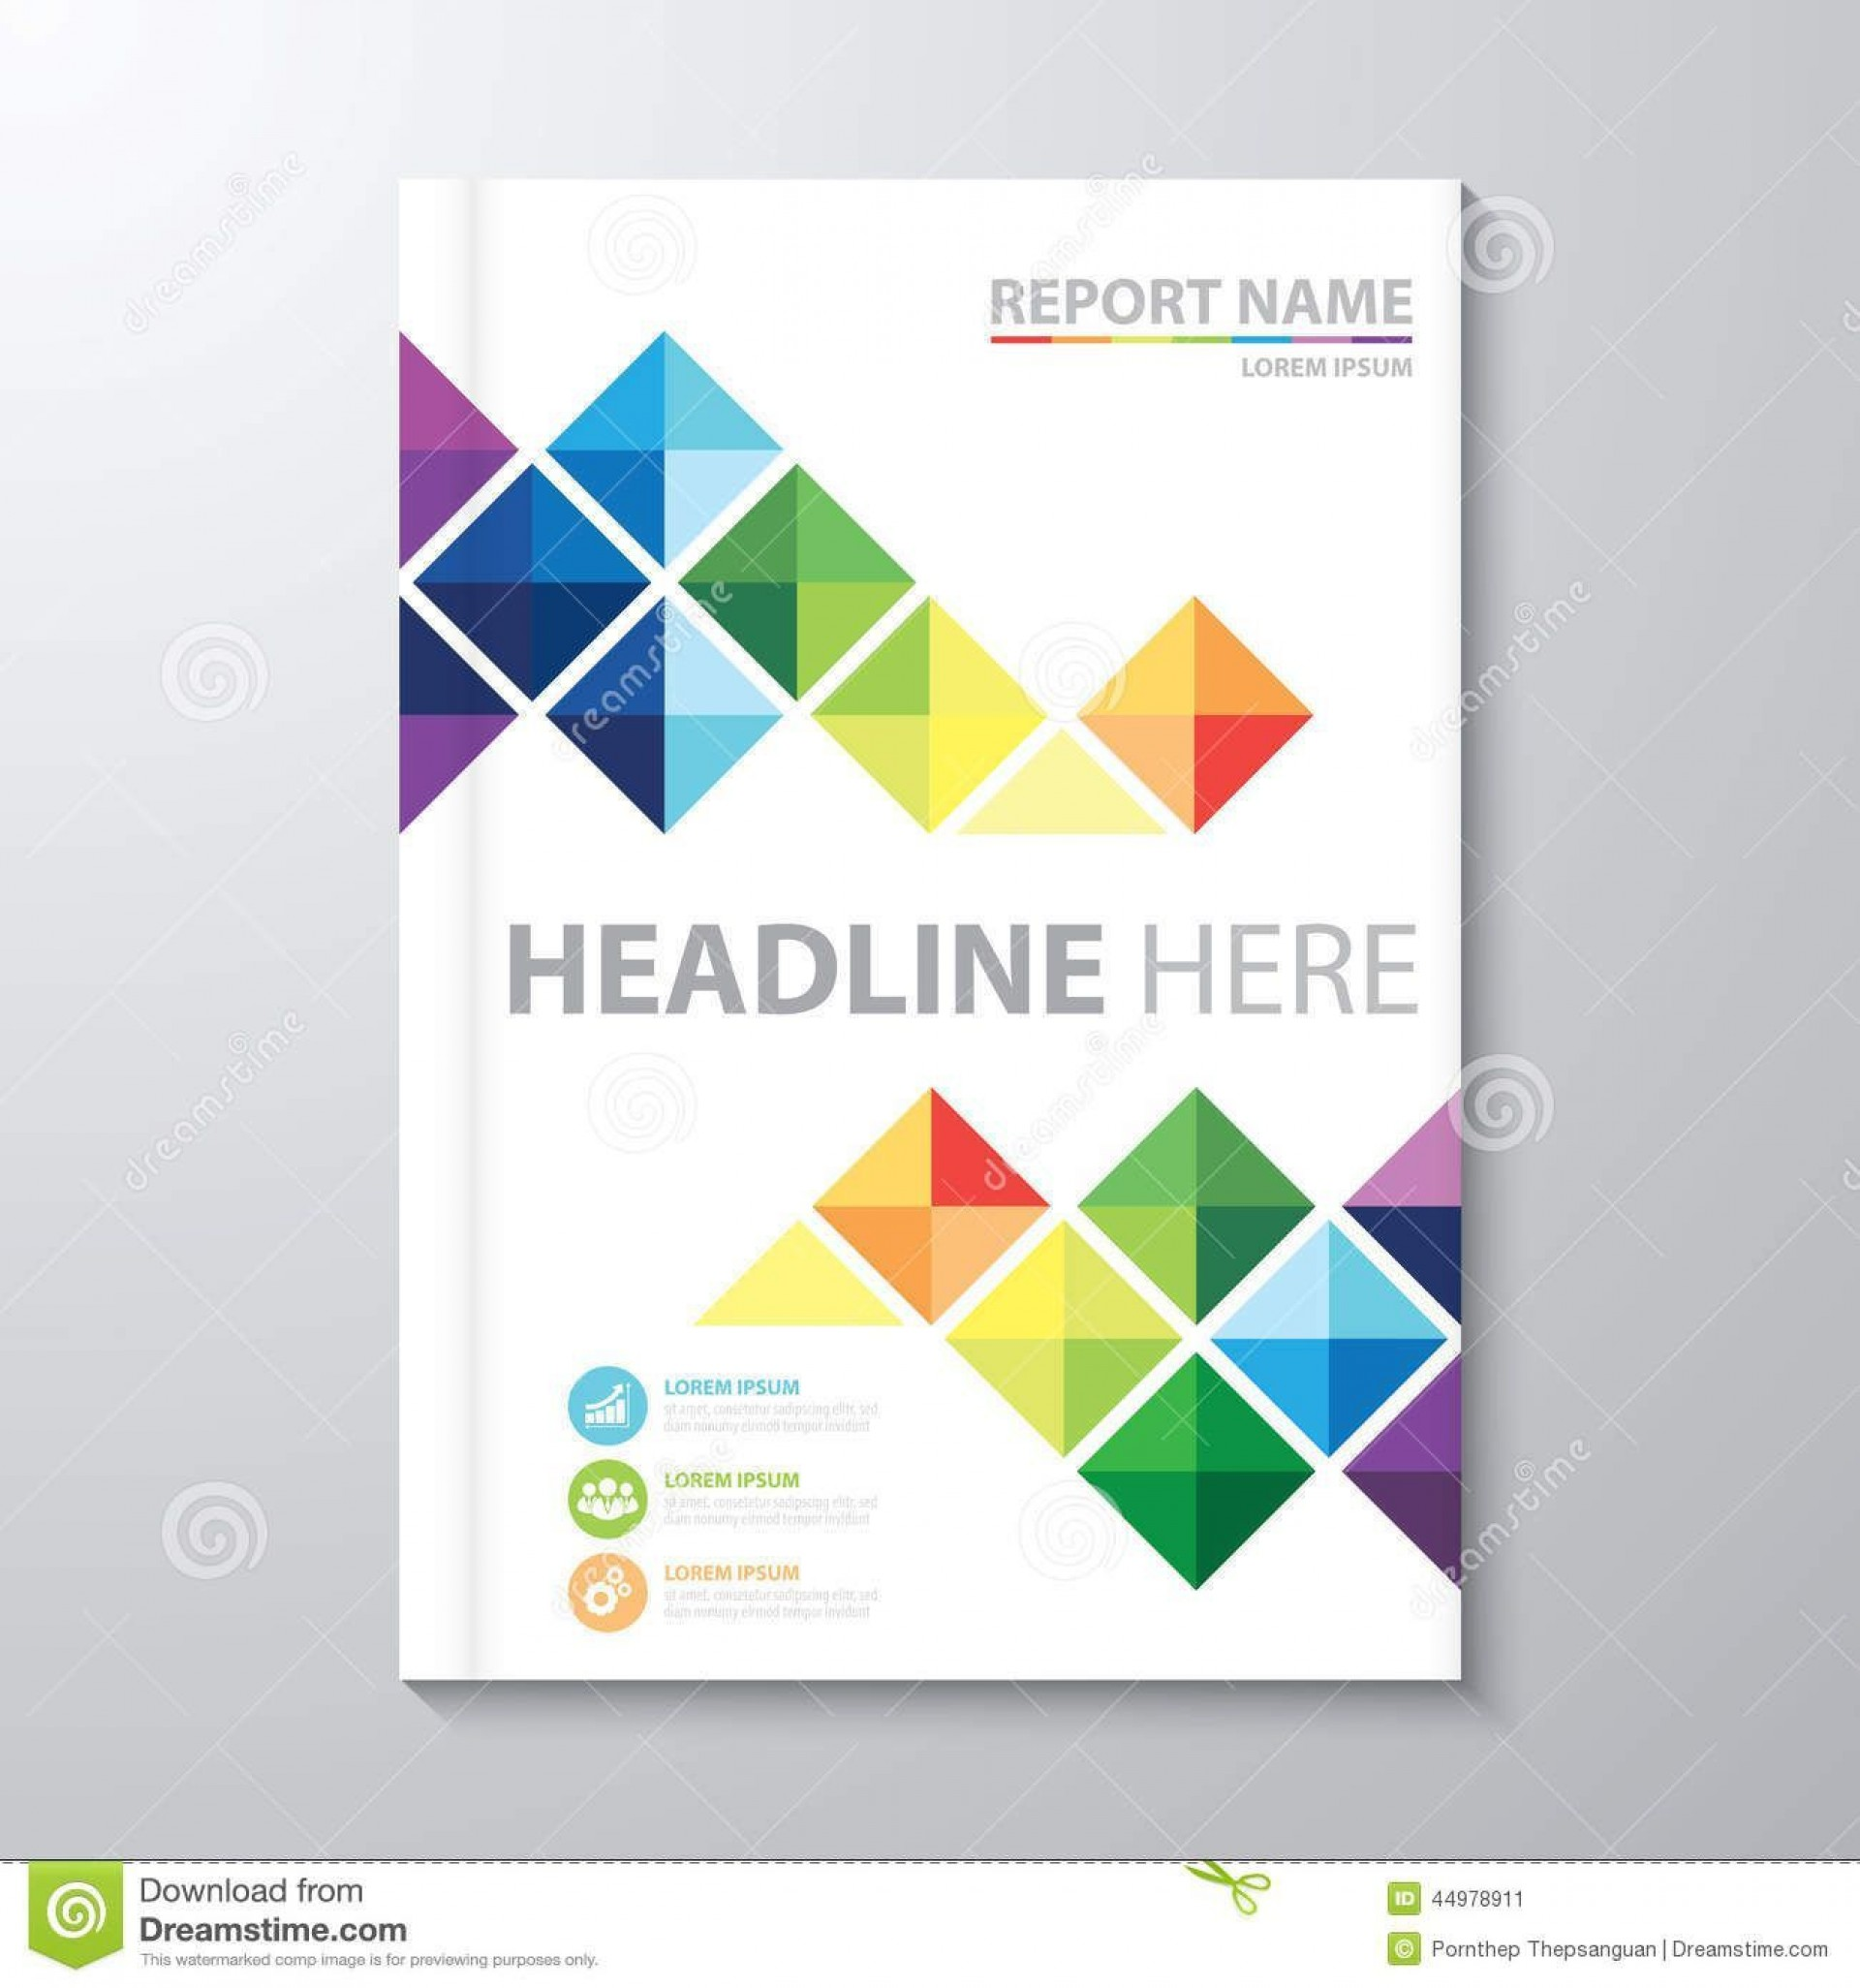 001 Incredible Free Download Annual Report Cover Design Template Example  Page In Word1920